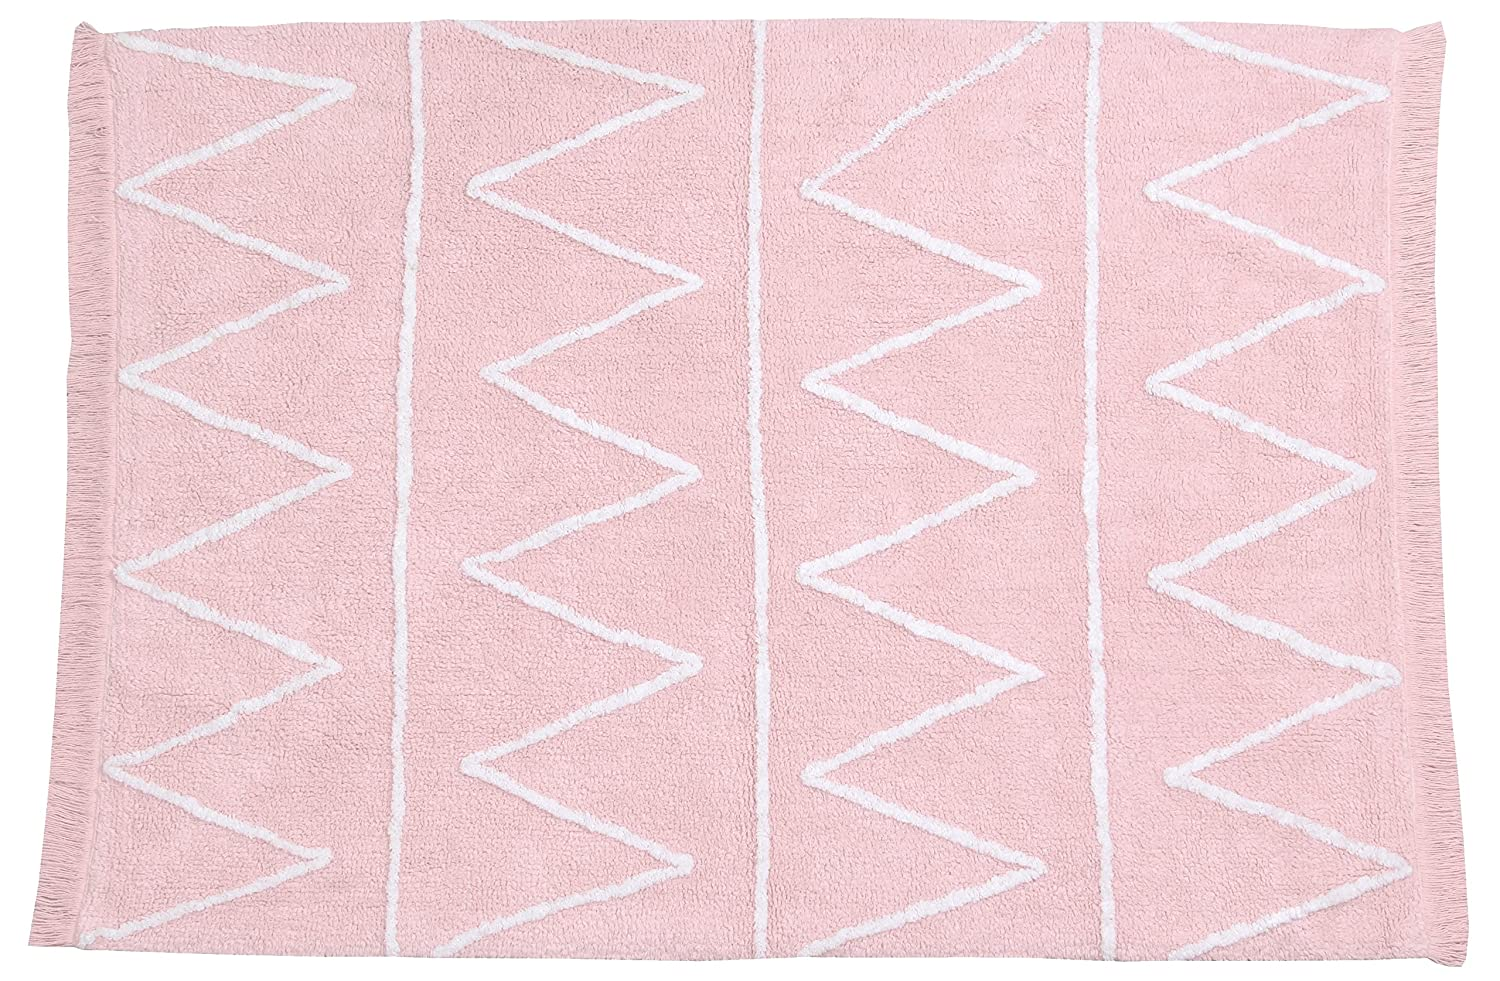 Lorena Canals Hippy Soft Washable Rug (Pink) Hippy Soft Pink C-HY-P